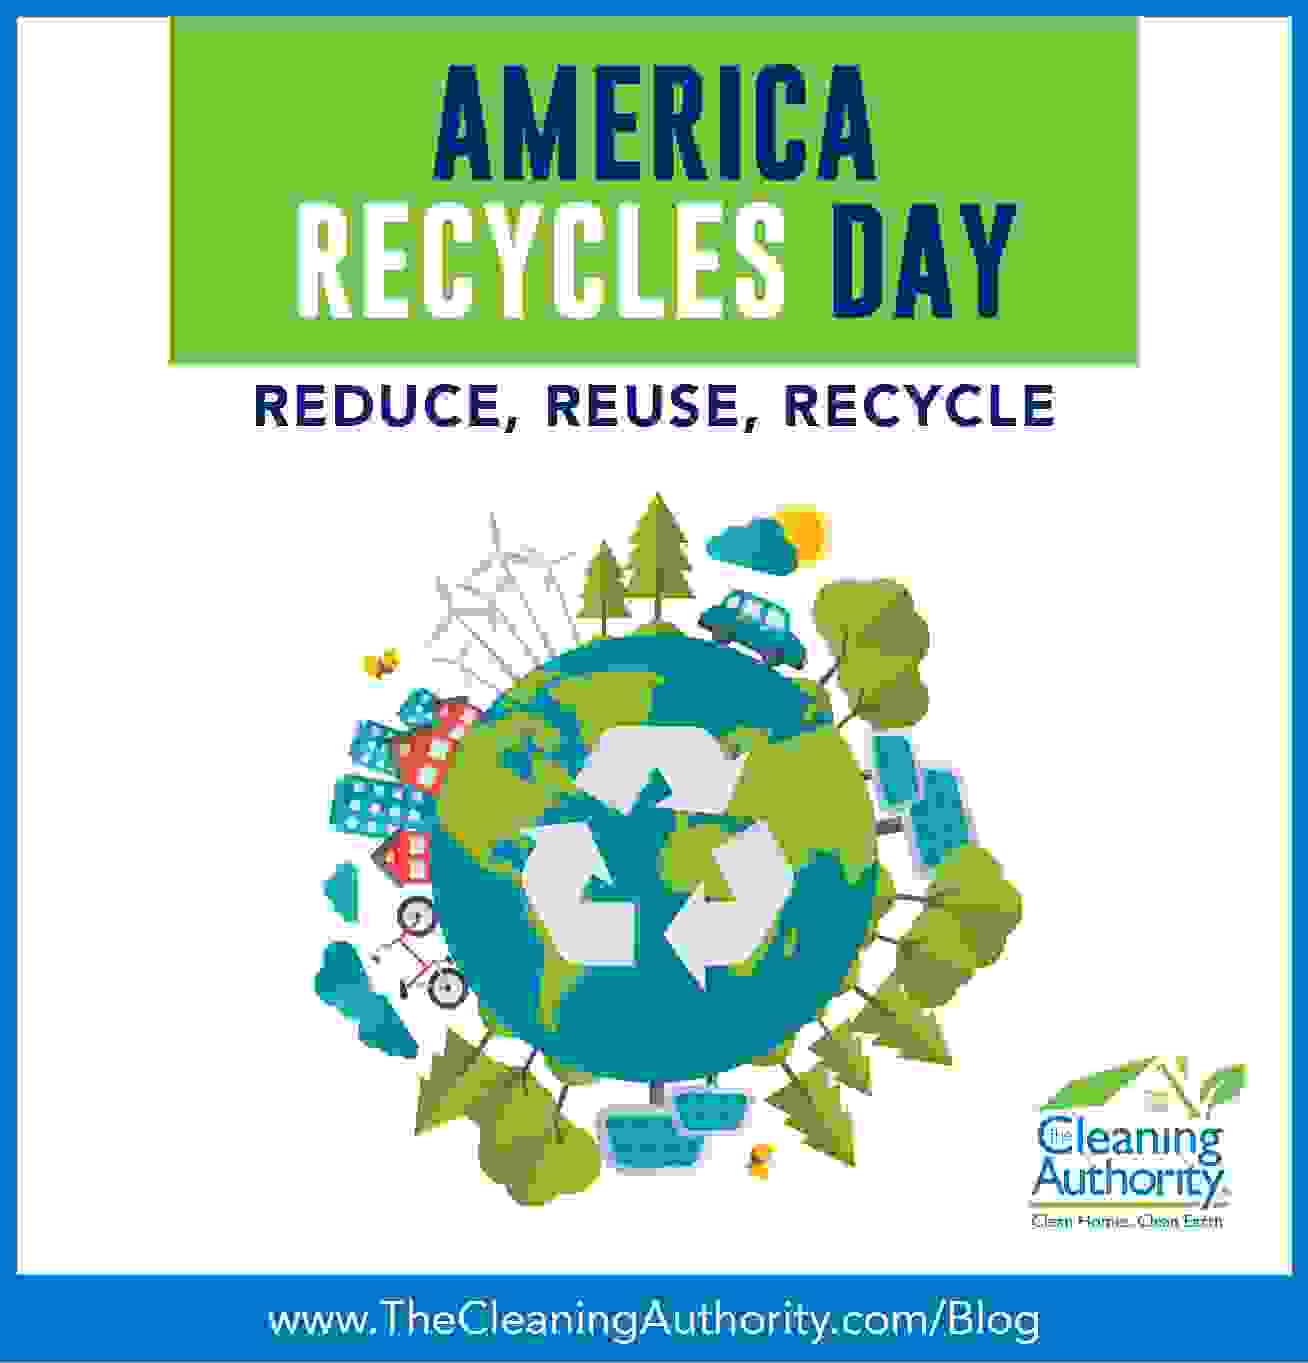 America Recycles Day - reduce, reuse, recycle